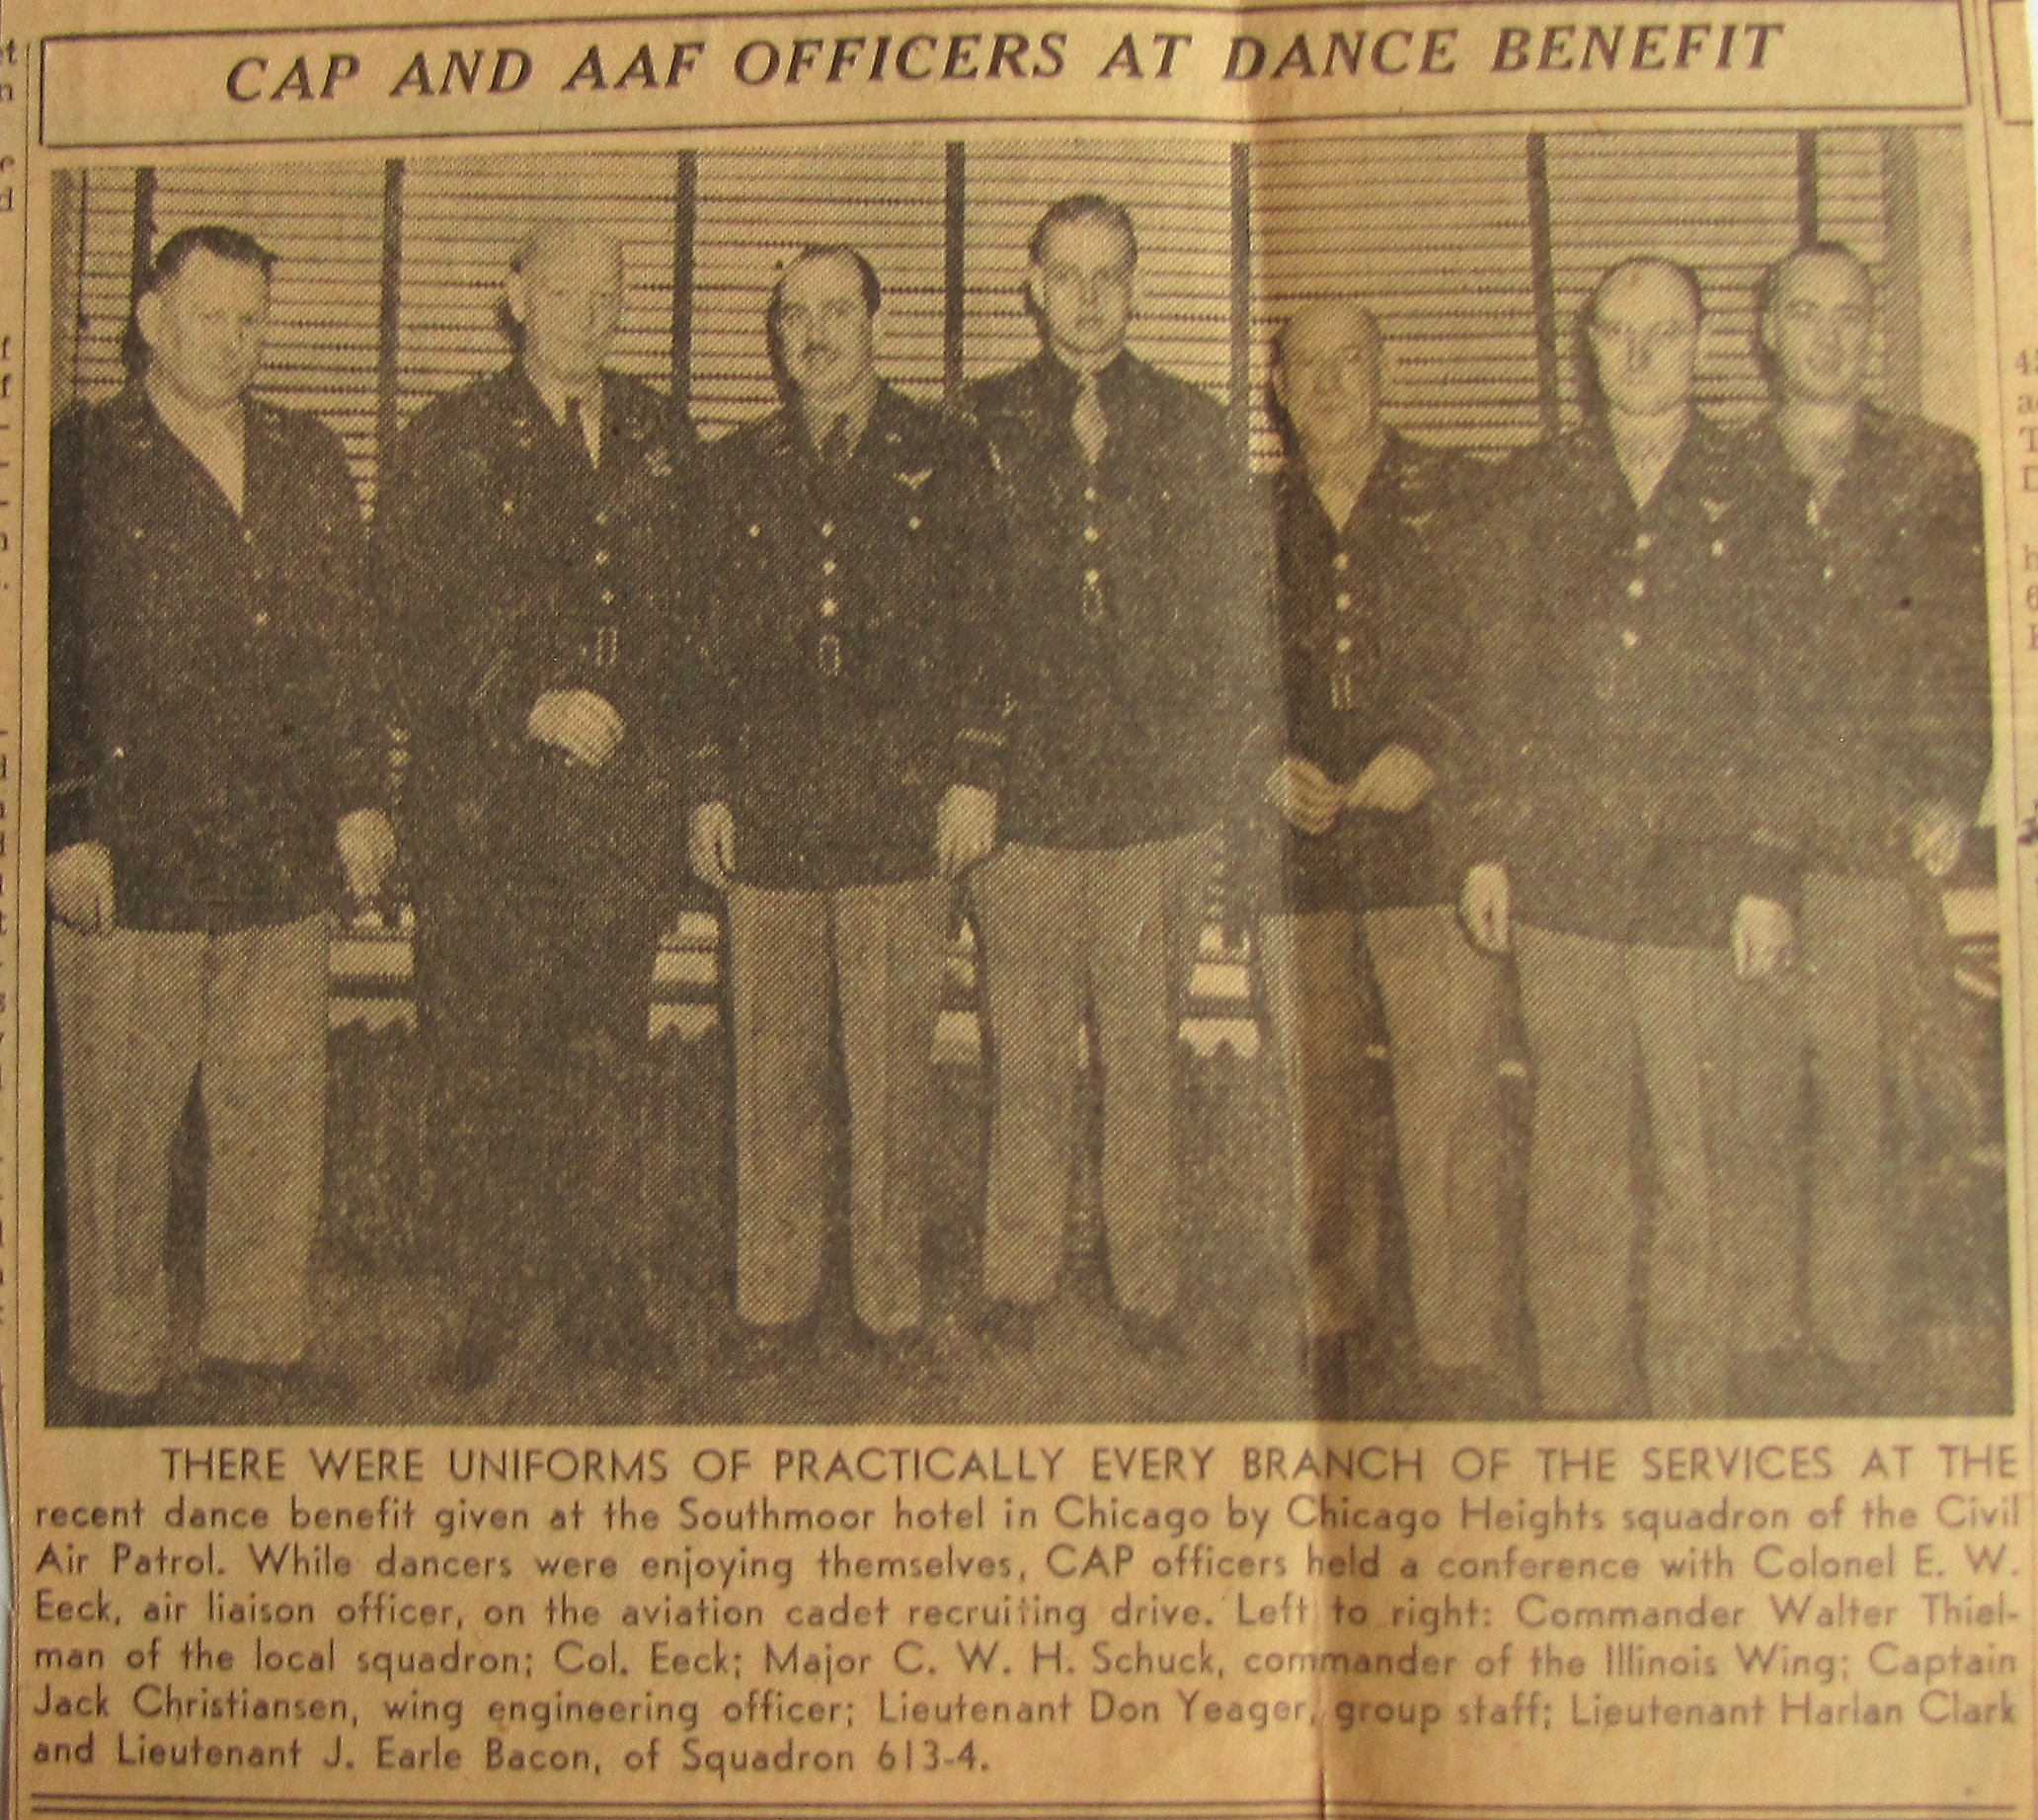 CAPS OFFICERS